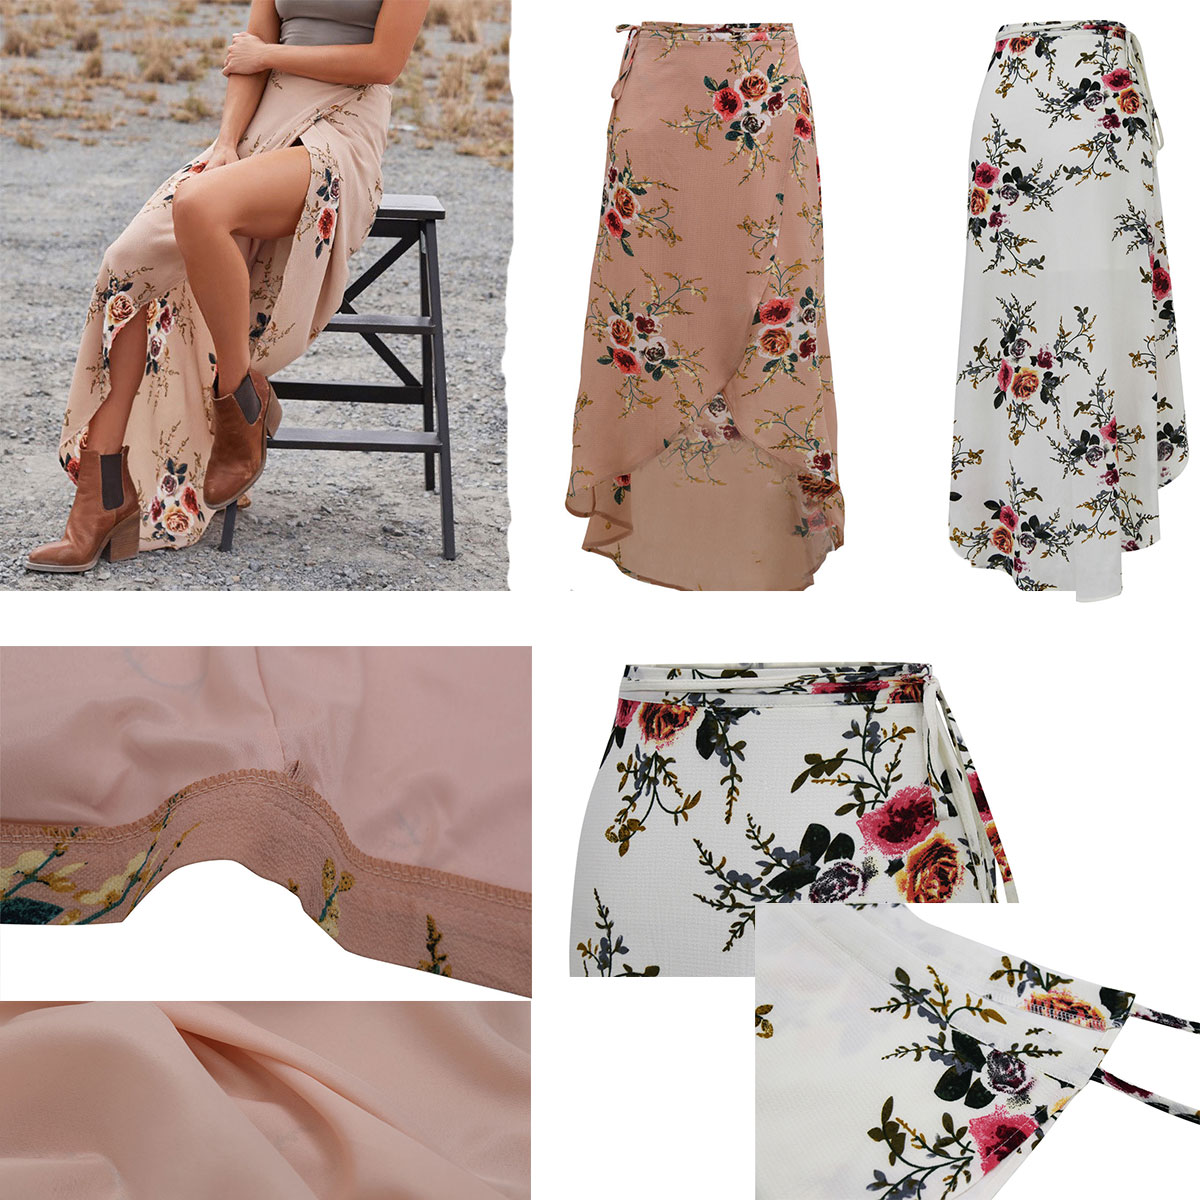 afc26edd2 Details about Boho Gypsy Women Floral Long Maxi Skirt Casual Summer Split  Beach Wrap Sun Dress